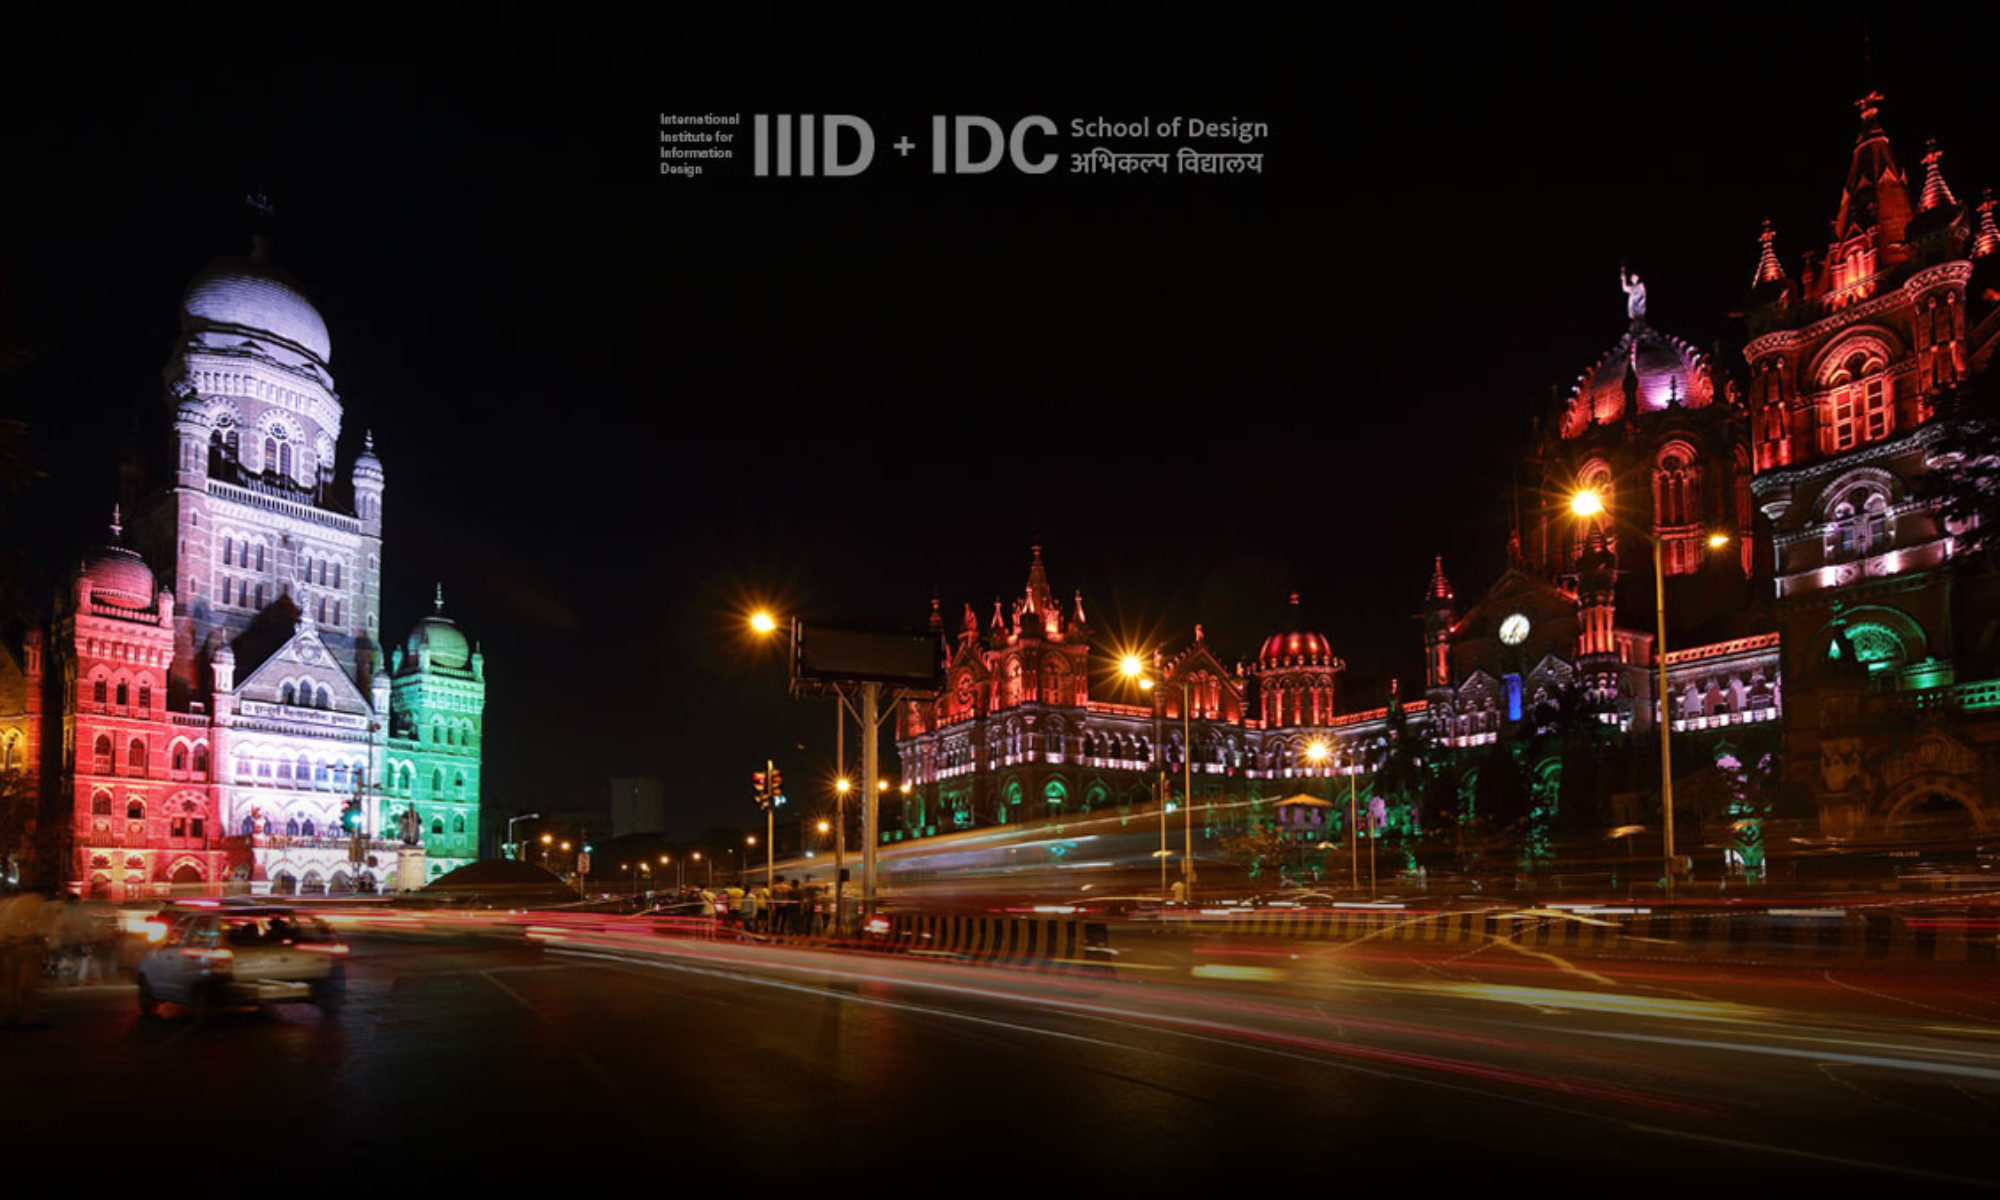 IIID Mobility & Transport Forum 2020